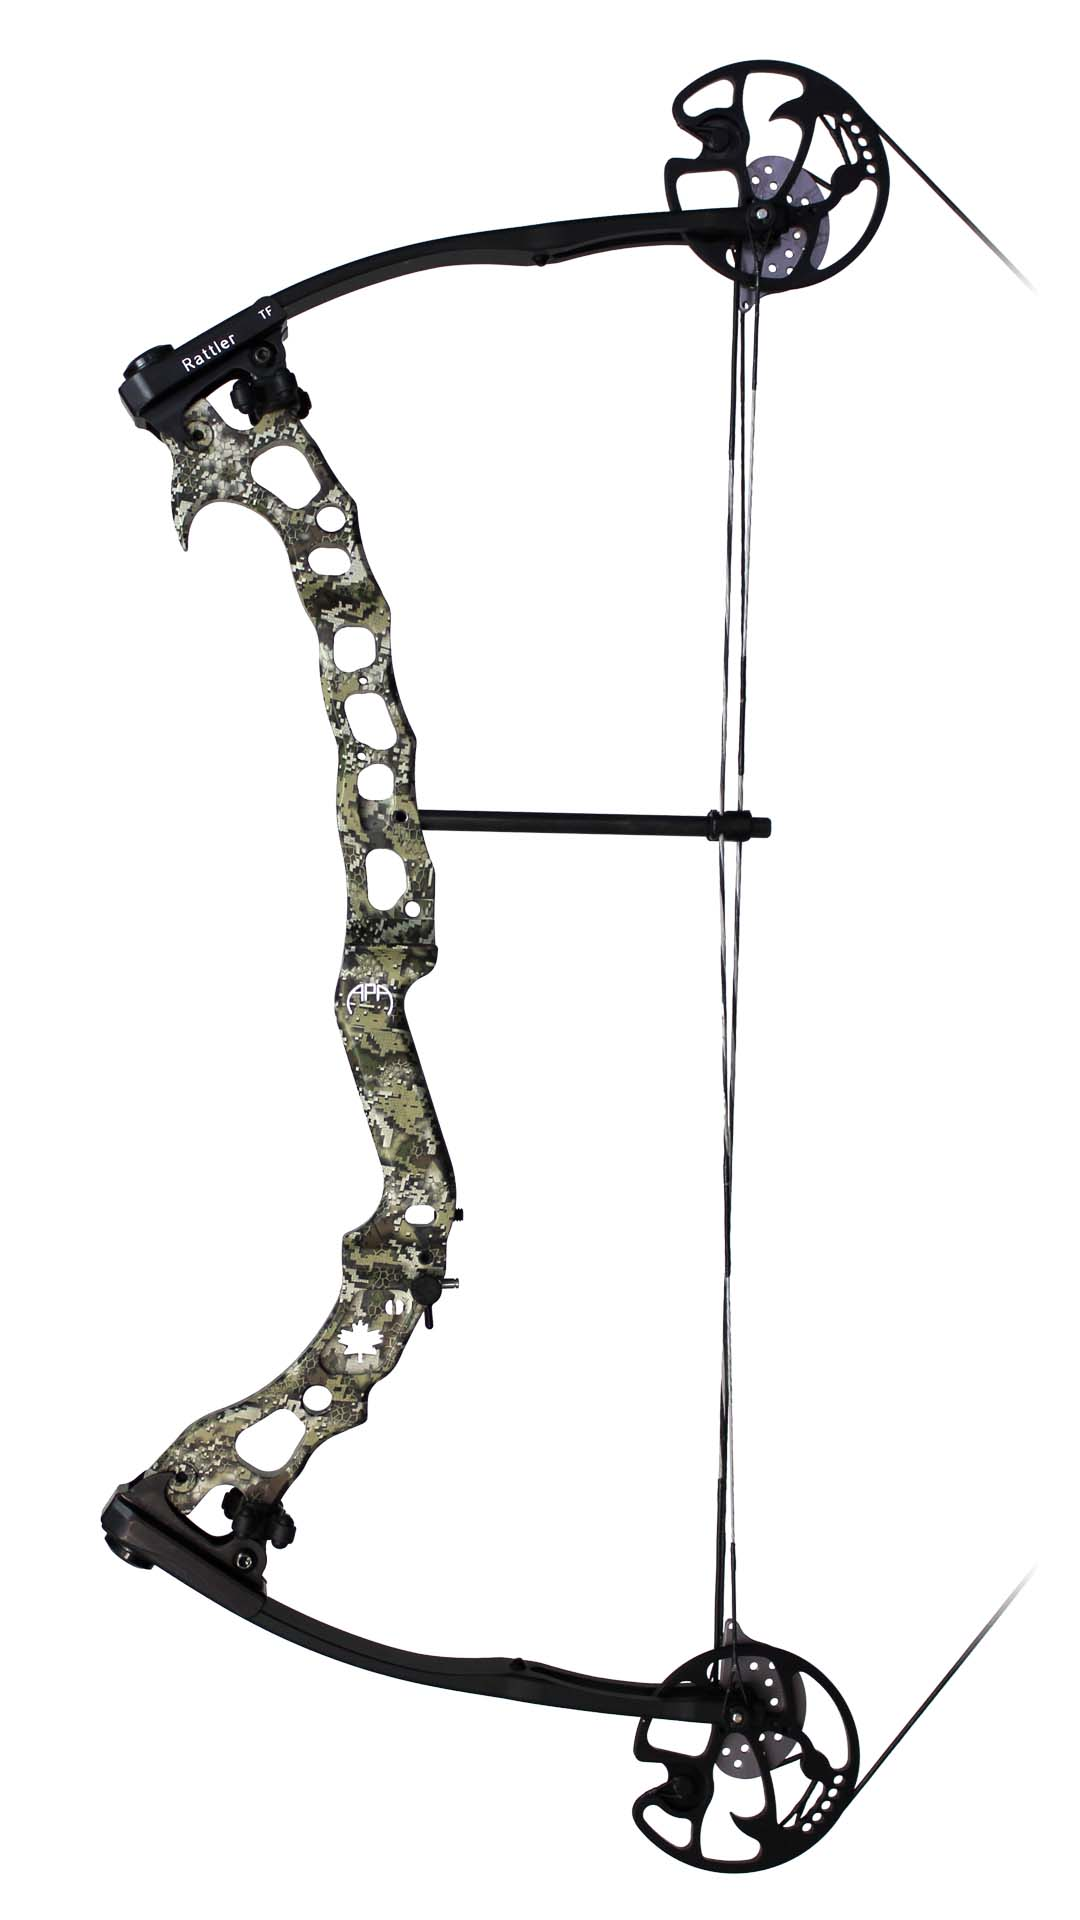 APA Rattler TF Compound Bow - Side View Image